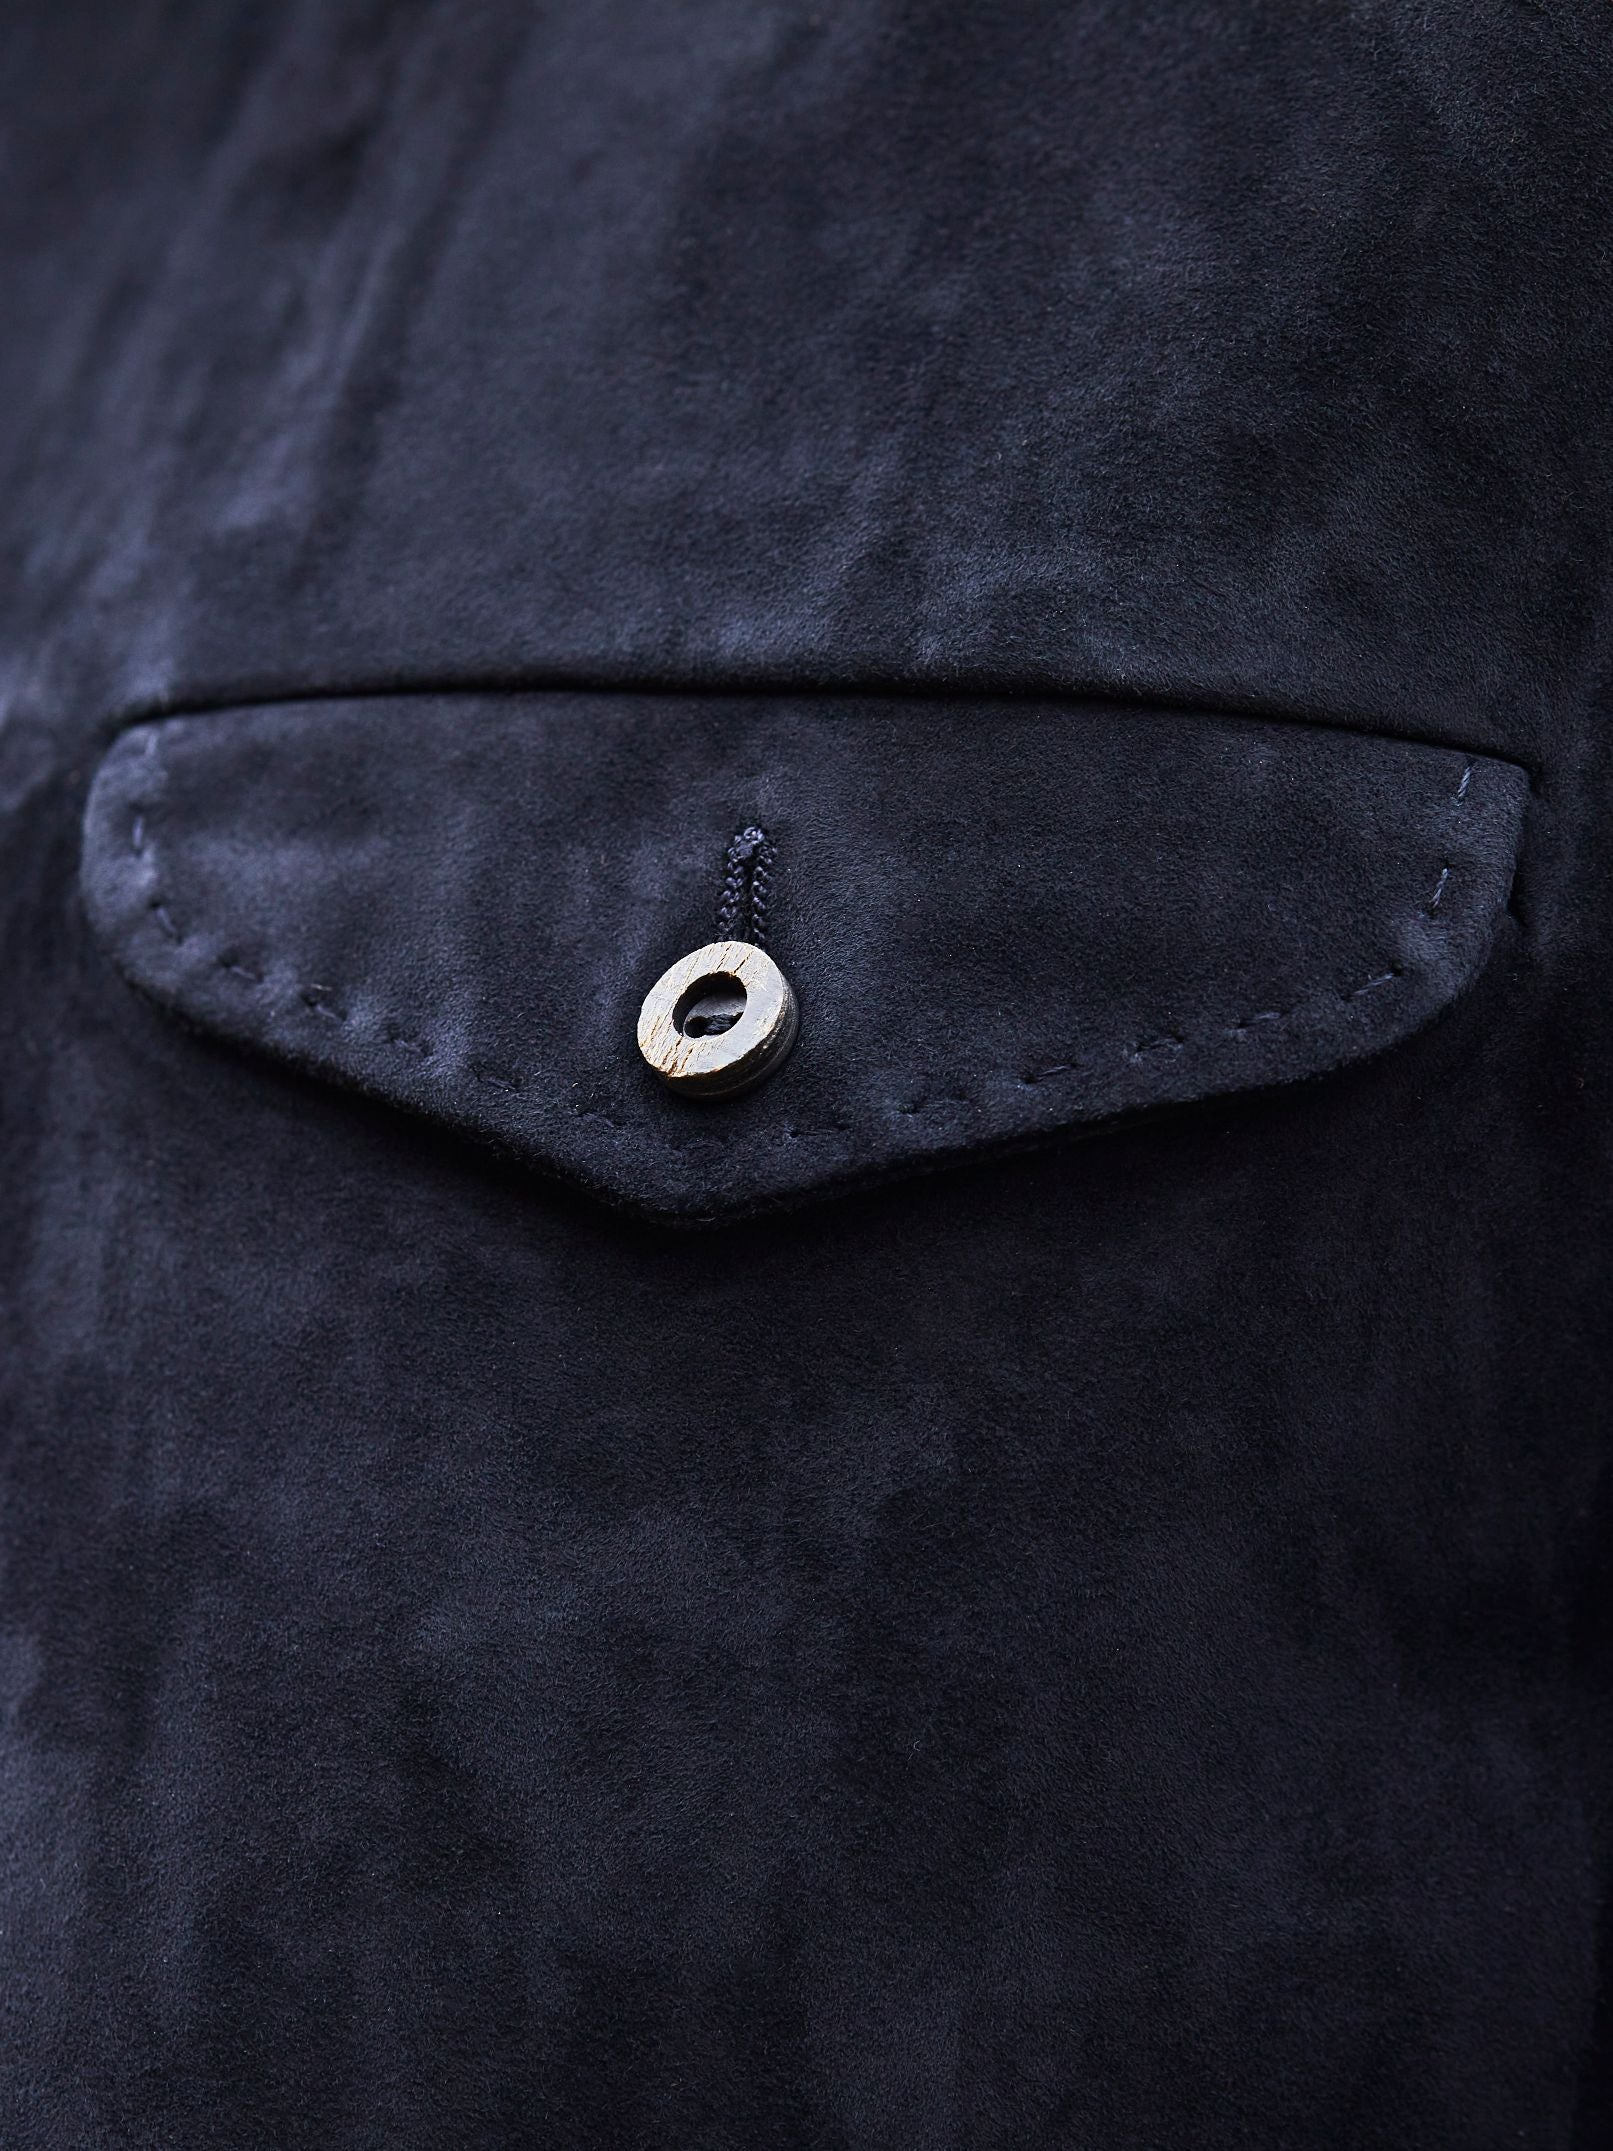 Pick Stitch on pocket flap